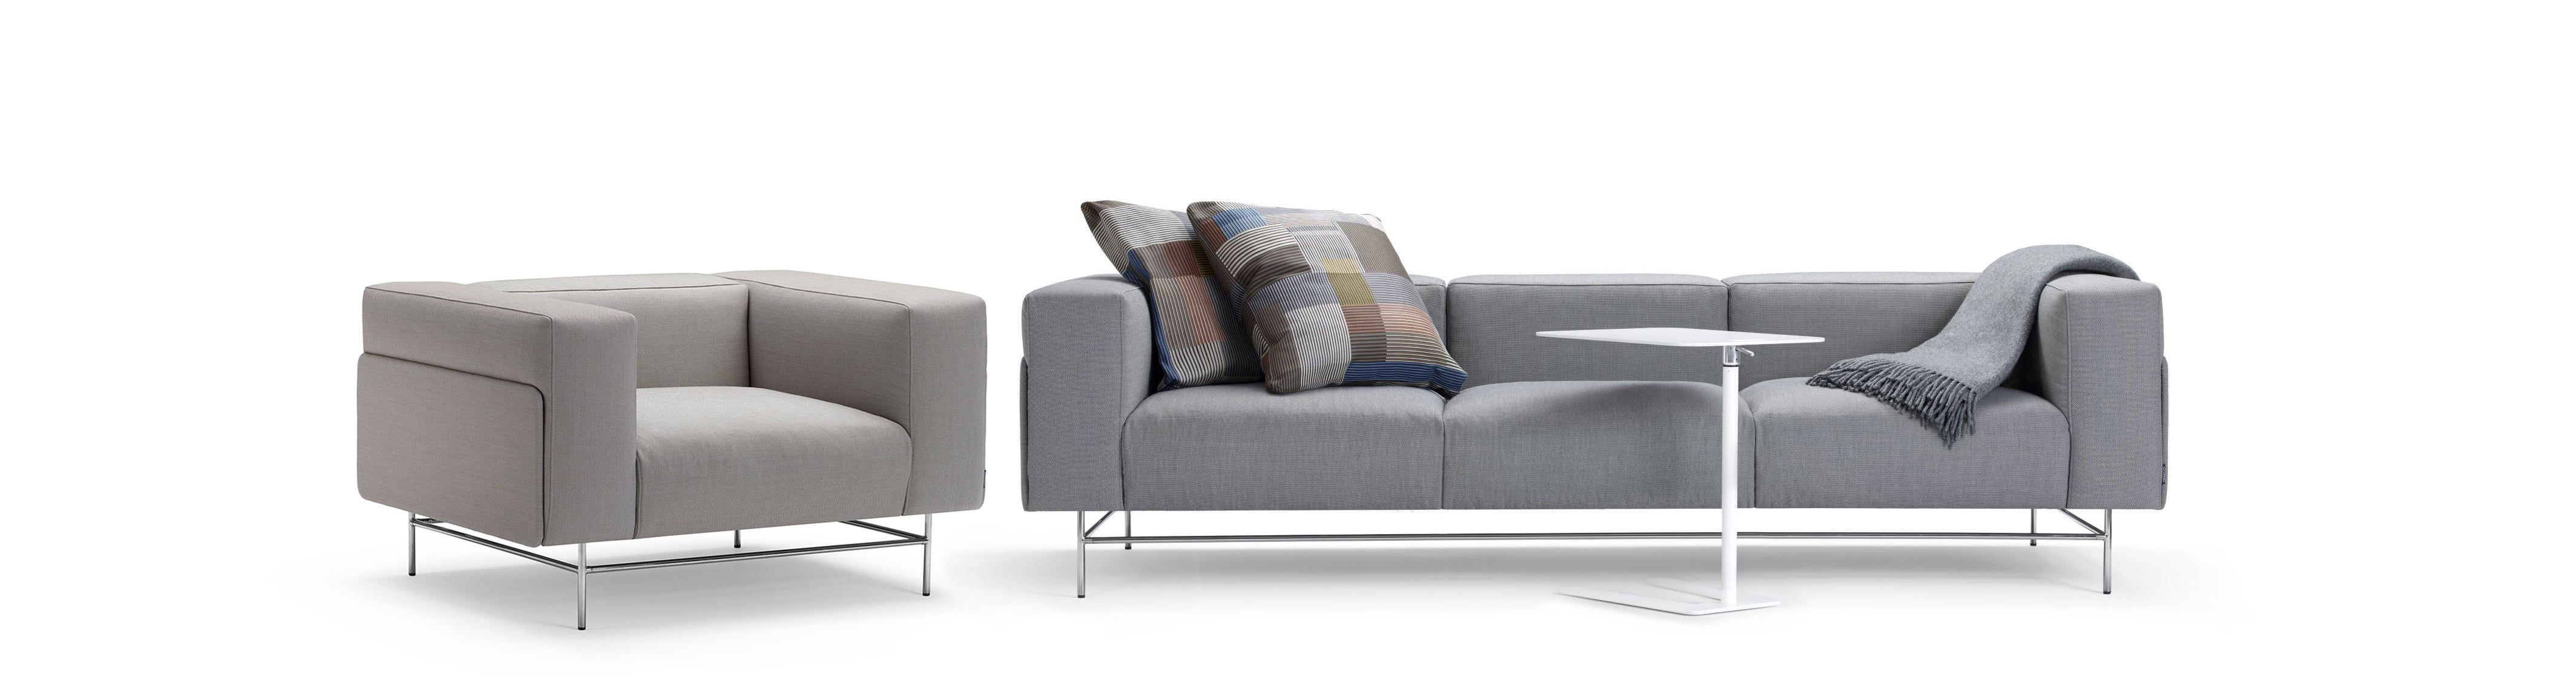 Offecct Avignon Easy Sofa Chair